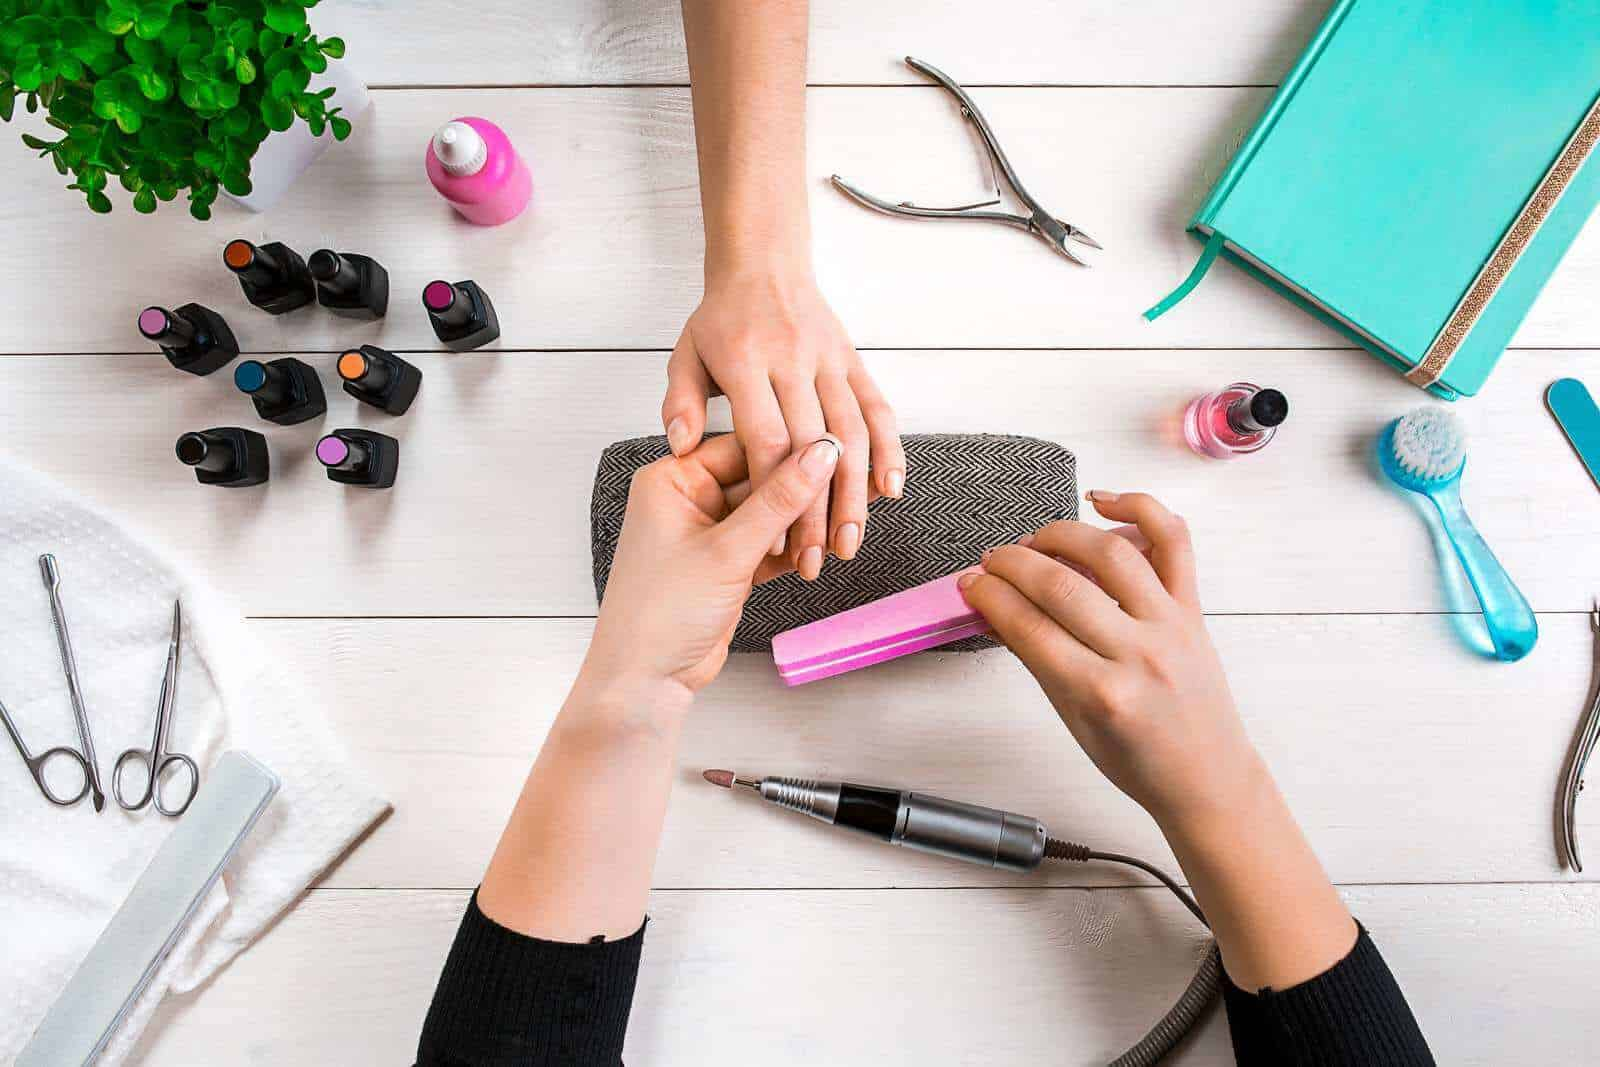 women working to attract more customers to nail salon